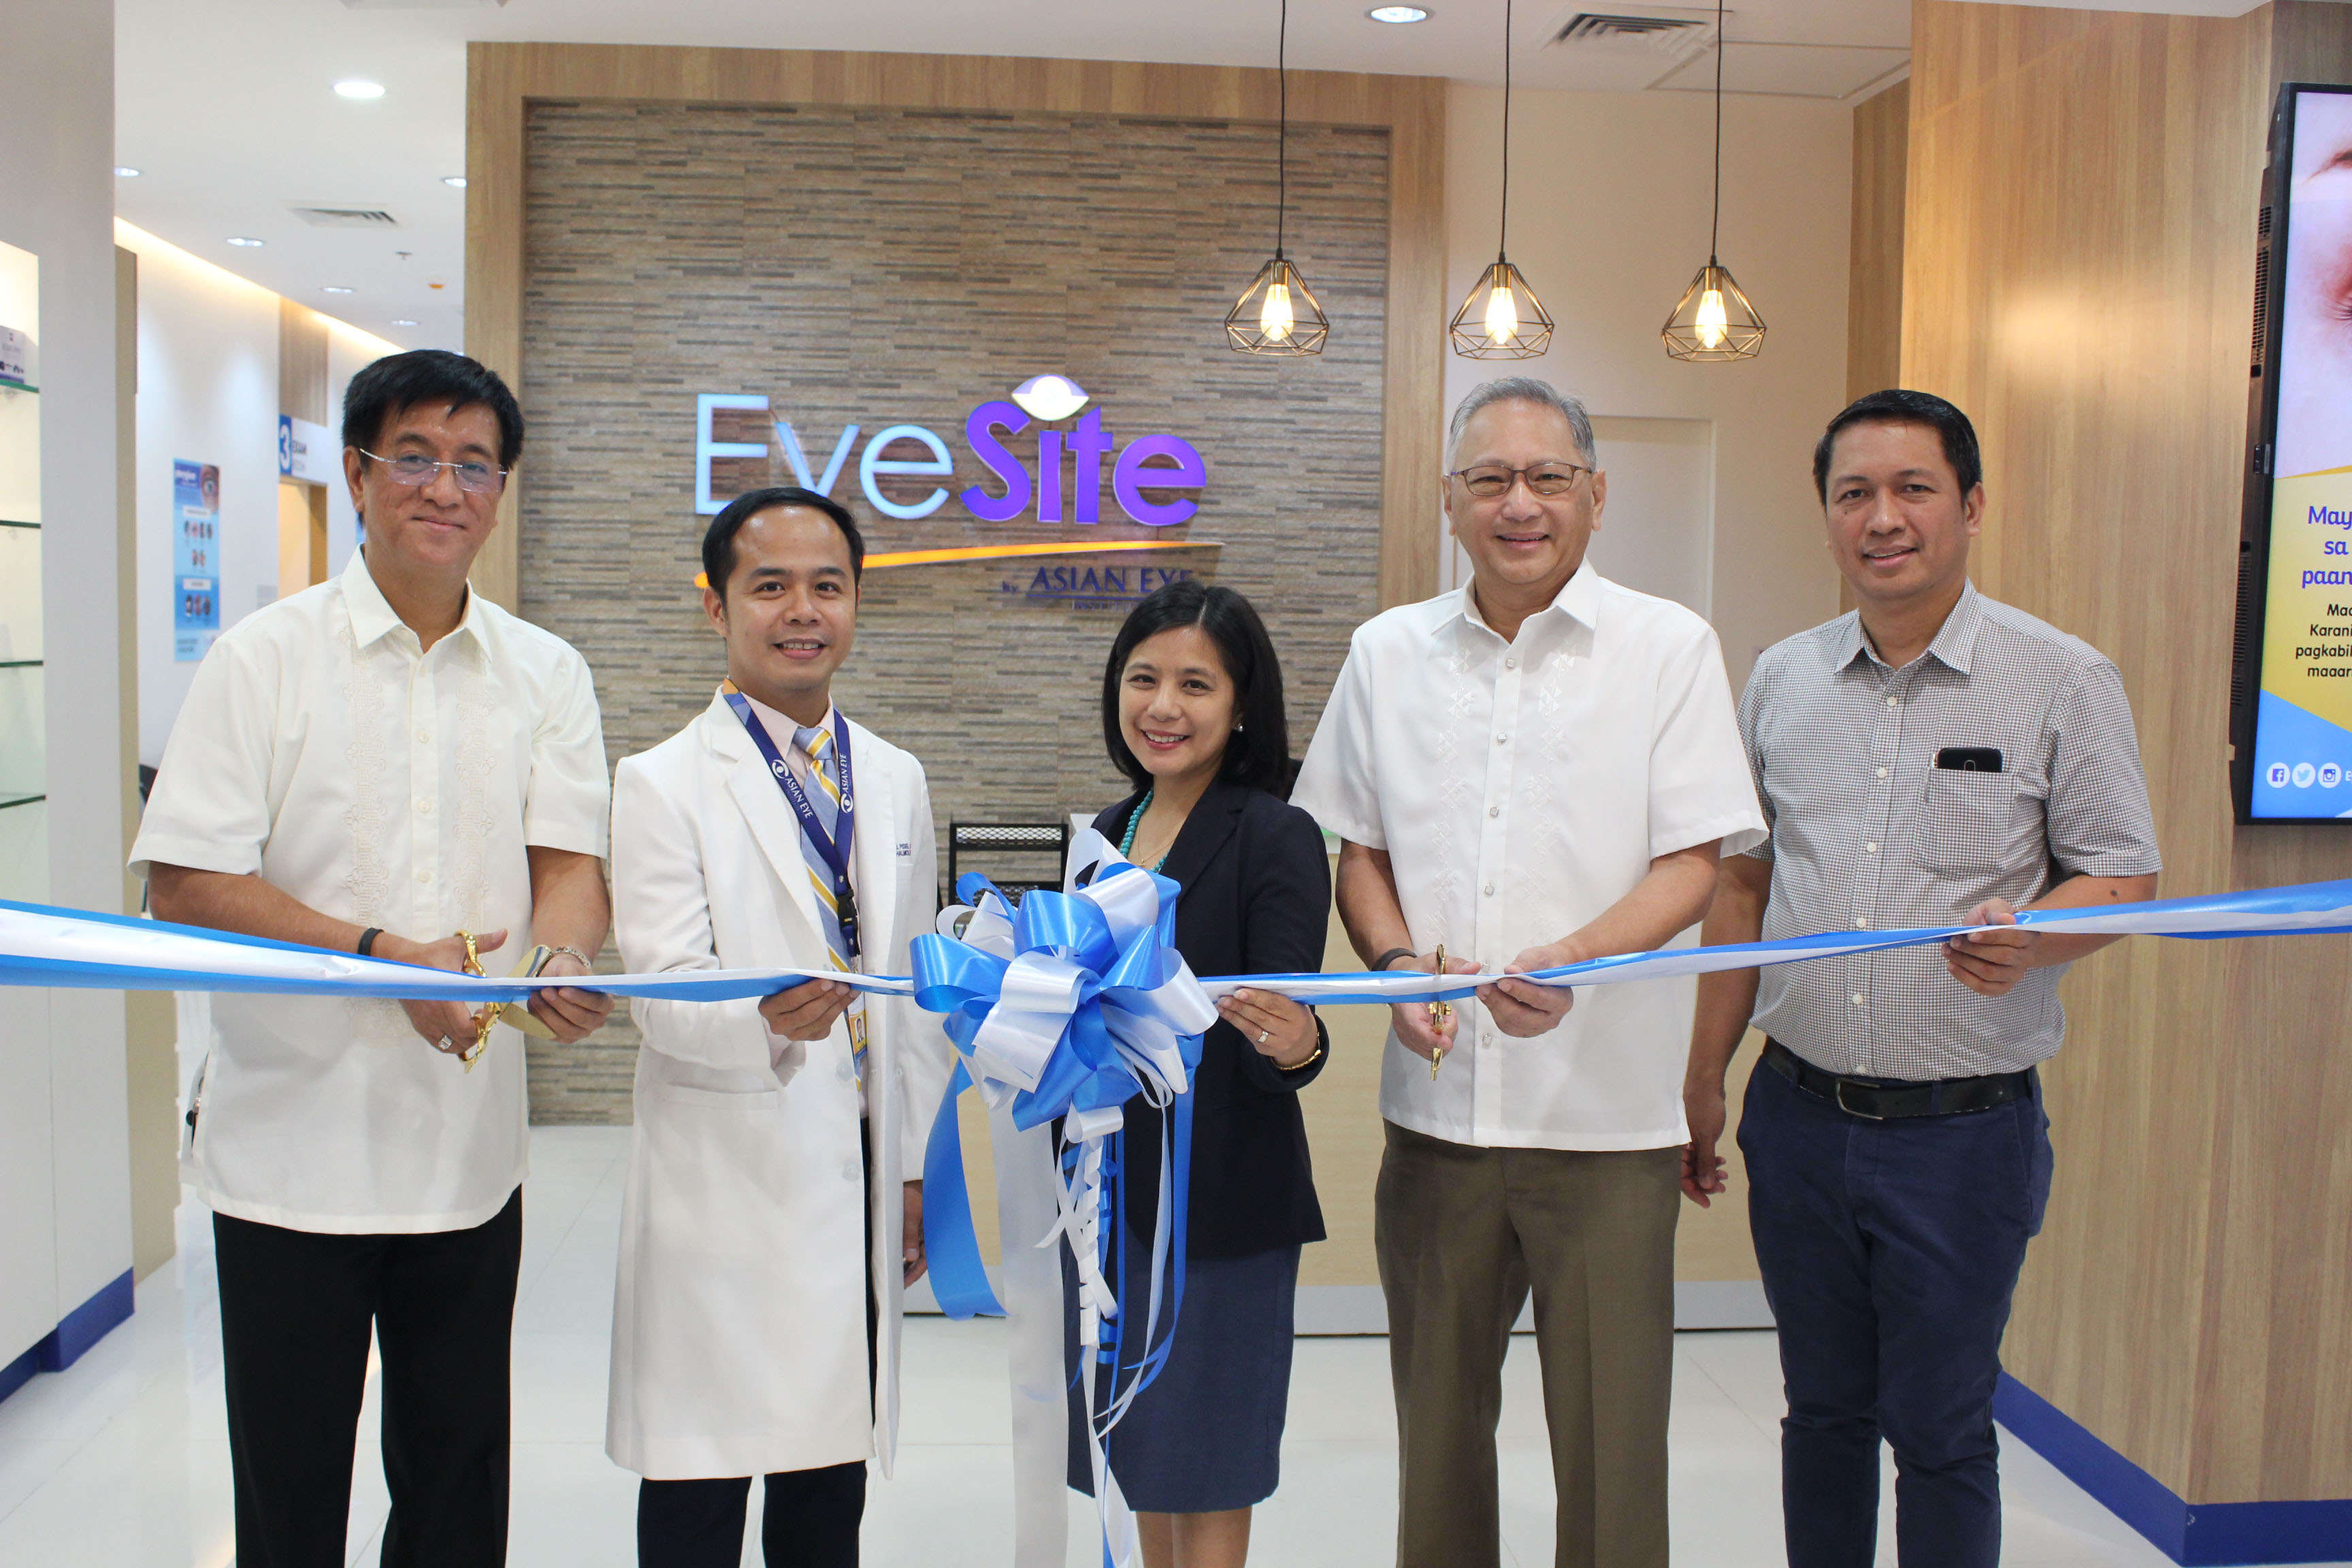 EyeSite's 'Serbisyong Sulit' opens in Fairview